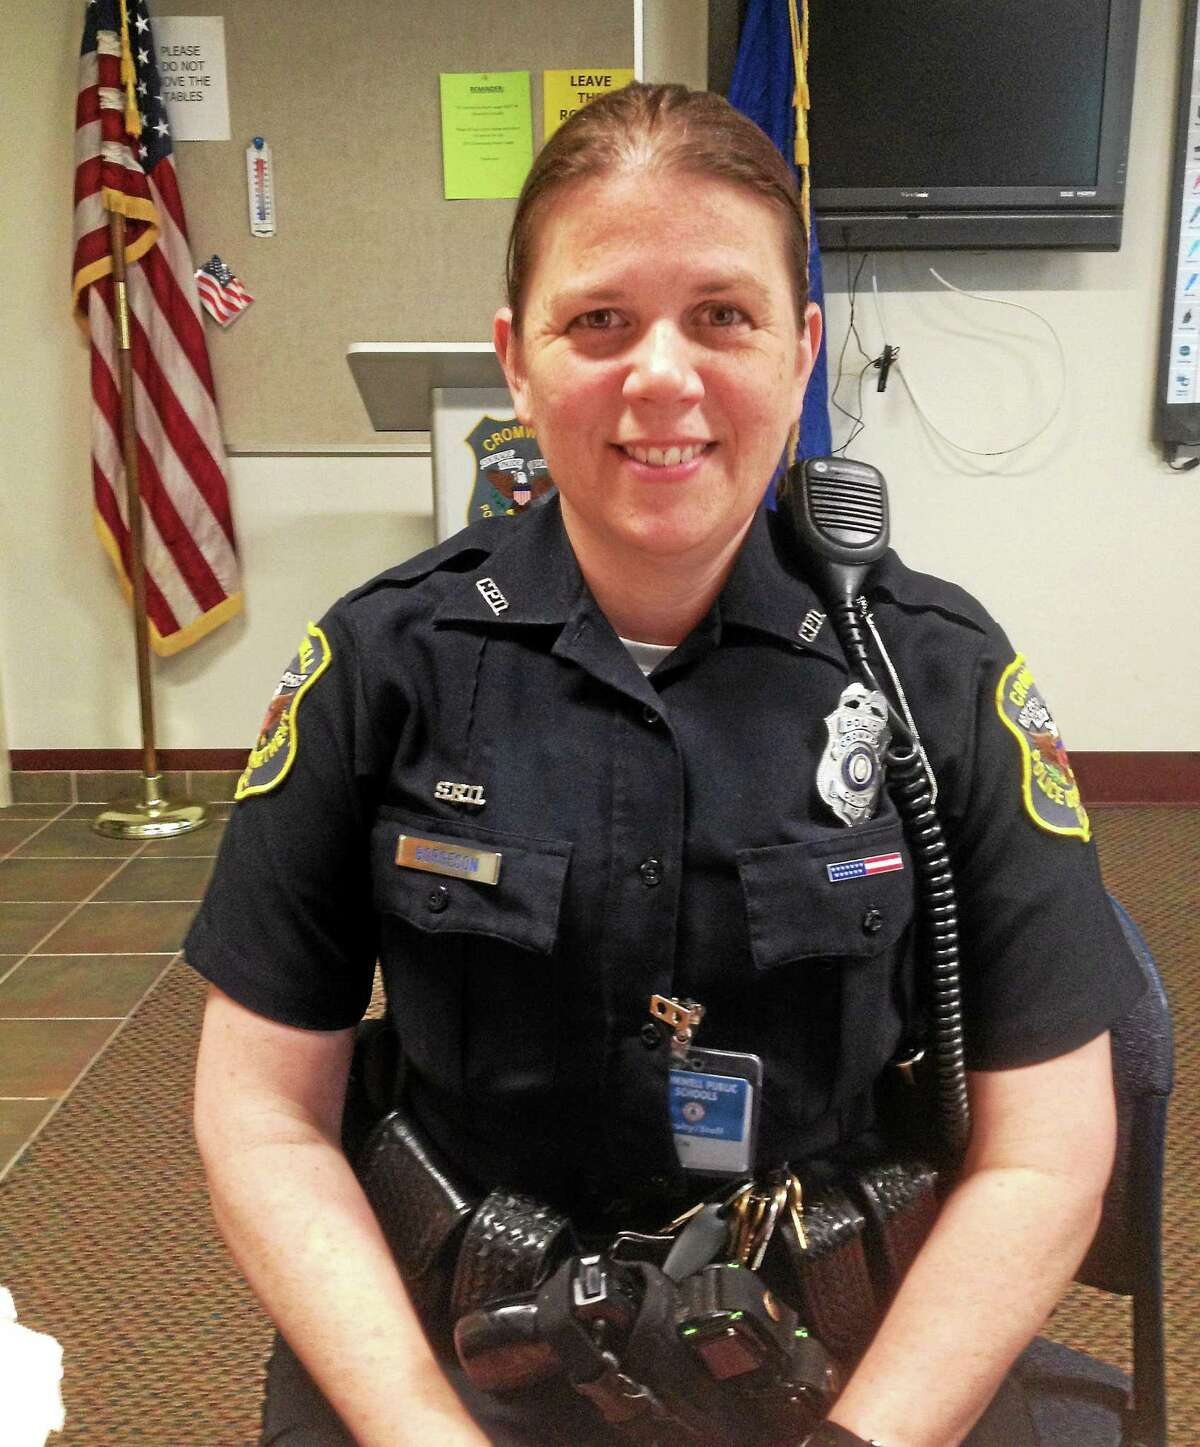 Cromwell school resource officer Sherry Borgeson is leaving her post at the Woodside Intermediate and middle schools to return to the real estate business.